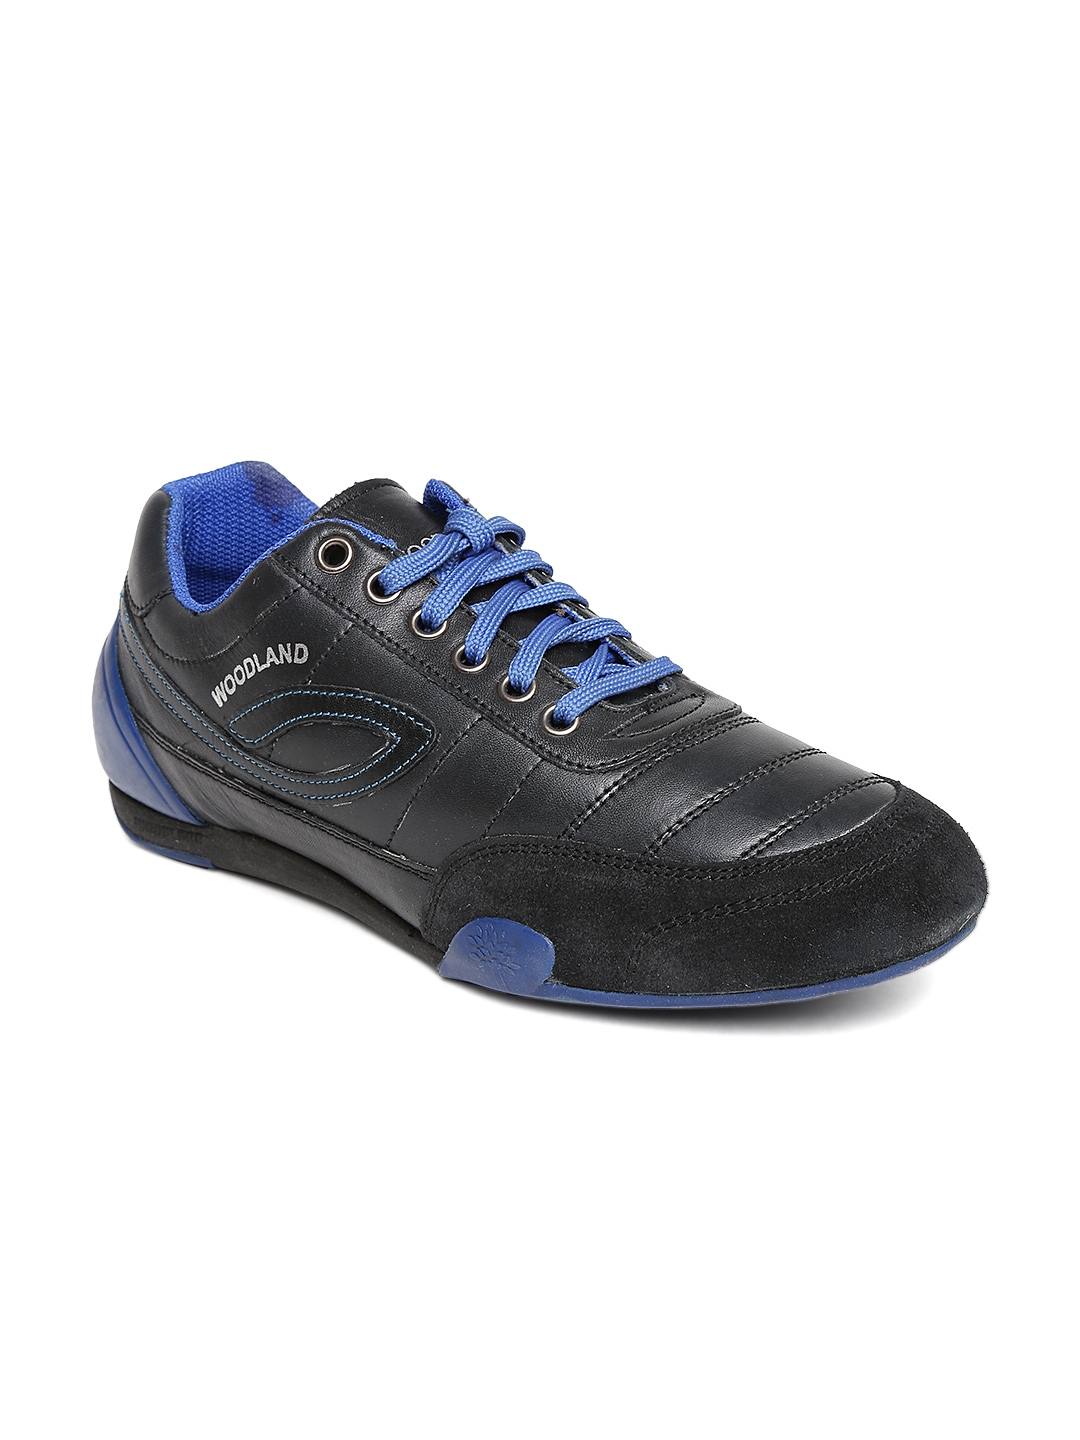 myntra woodland black leather casual shoes 829088